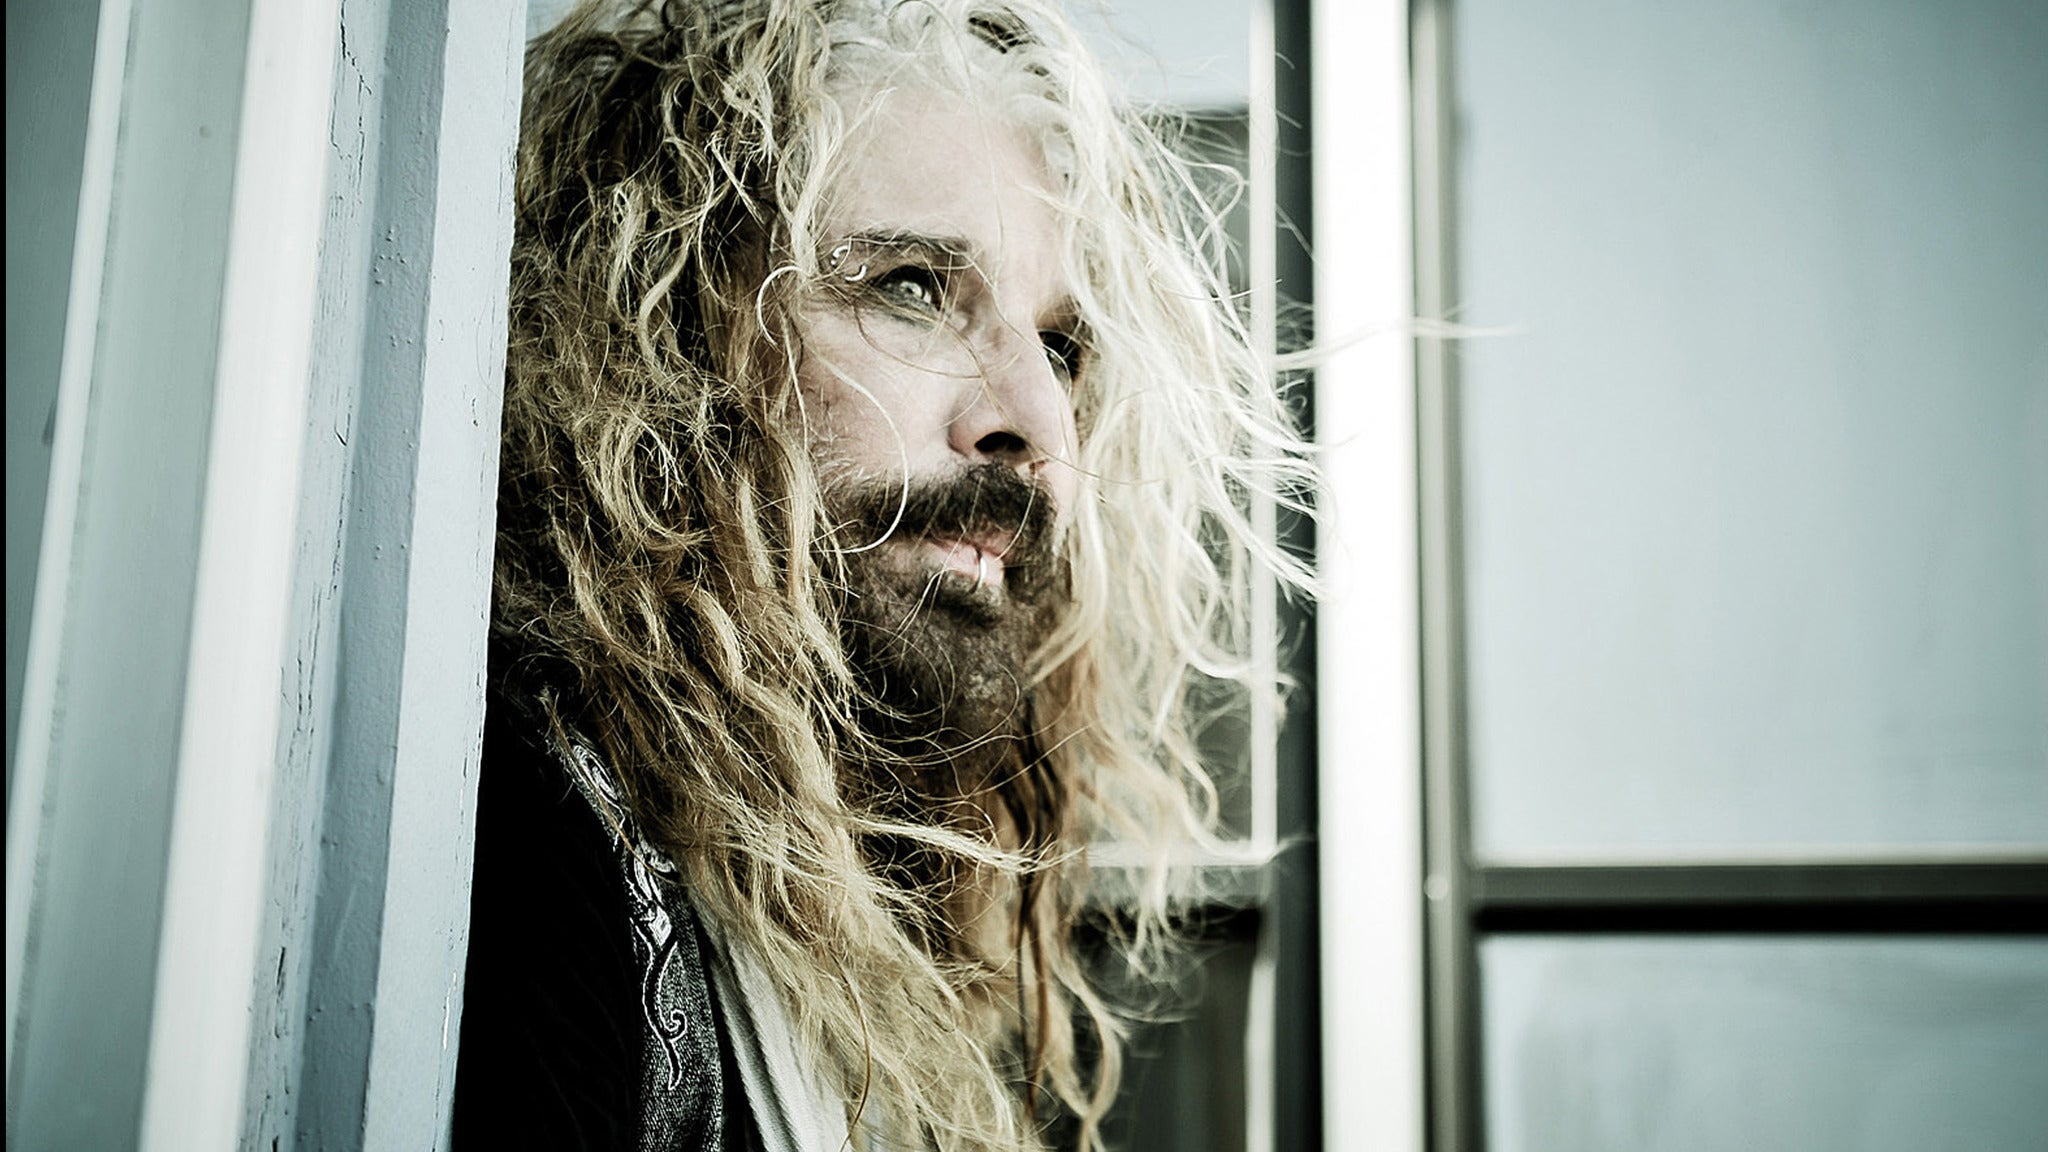 John Corabi with special guests at Brick by Brick